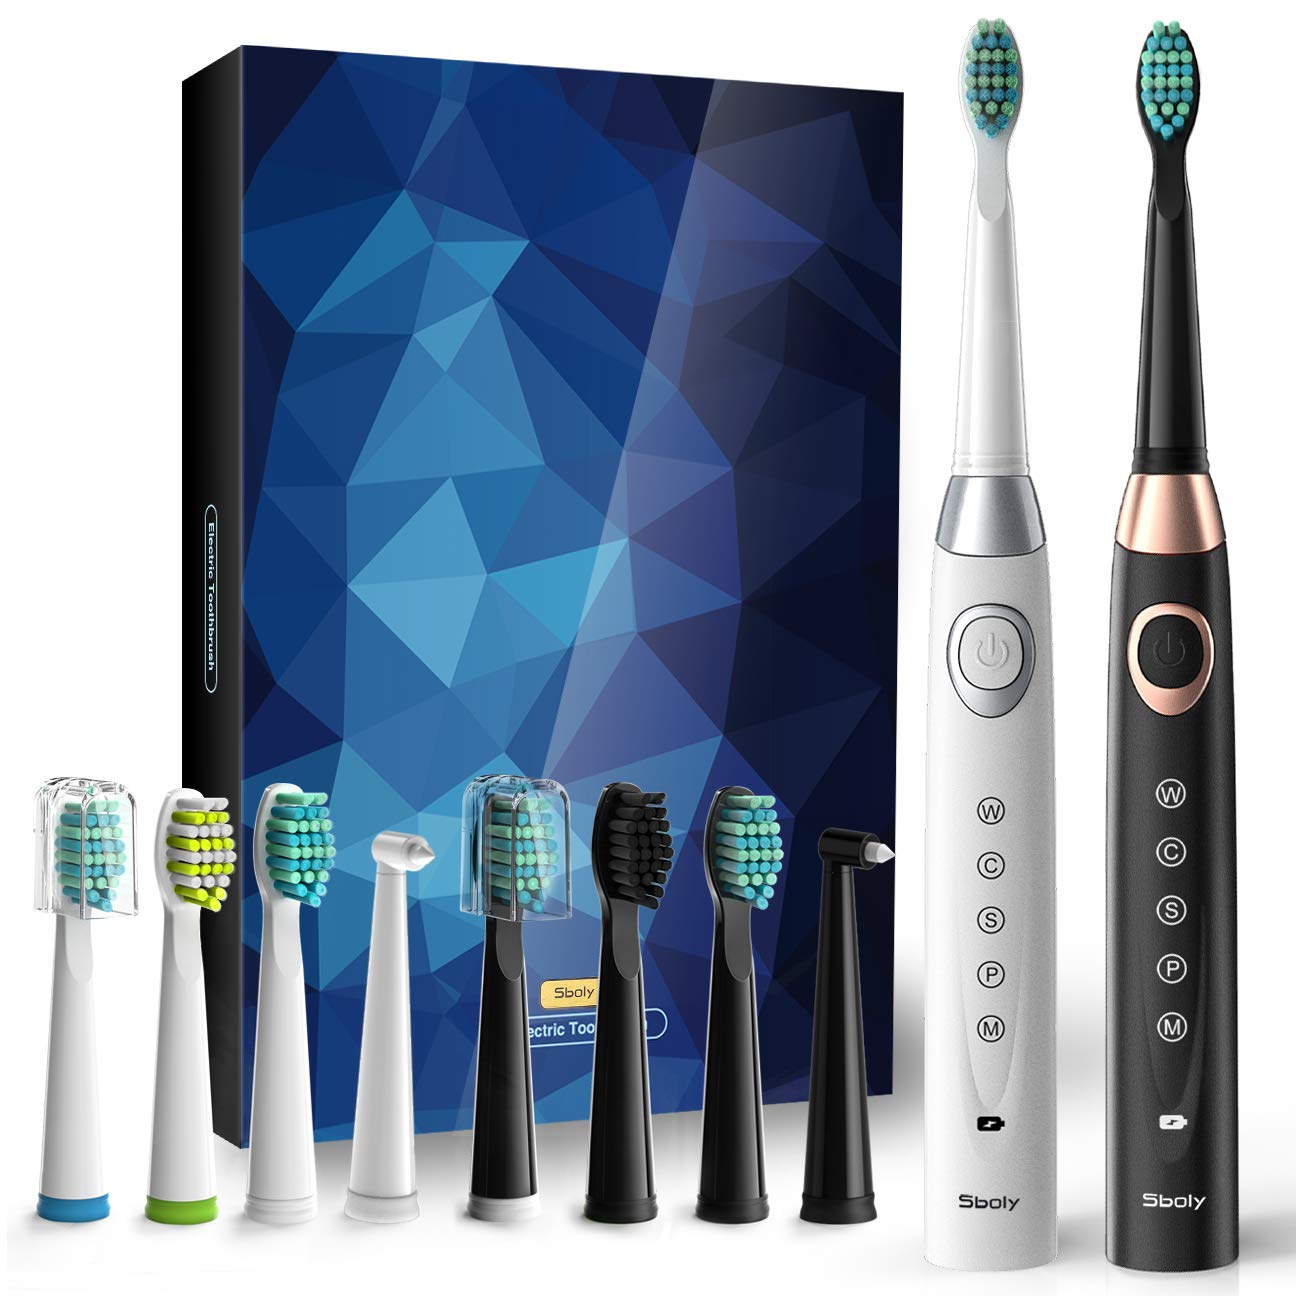 2 Sonic Electric Toothbrushes 5 Modes 8 Brush heads USB Fast Charge Powered Toothbrush Last for 30 Days, Built-in Smart Timer Rechargeable Toothbrushes for Adults and Kids (1 Black And 1 White)